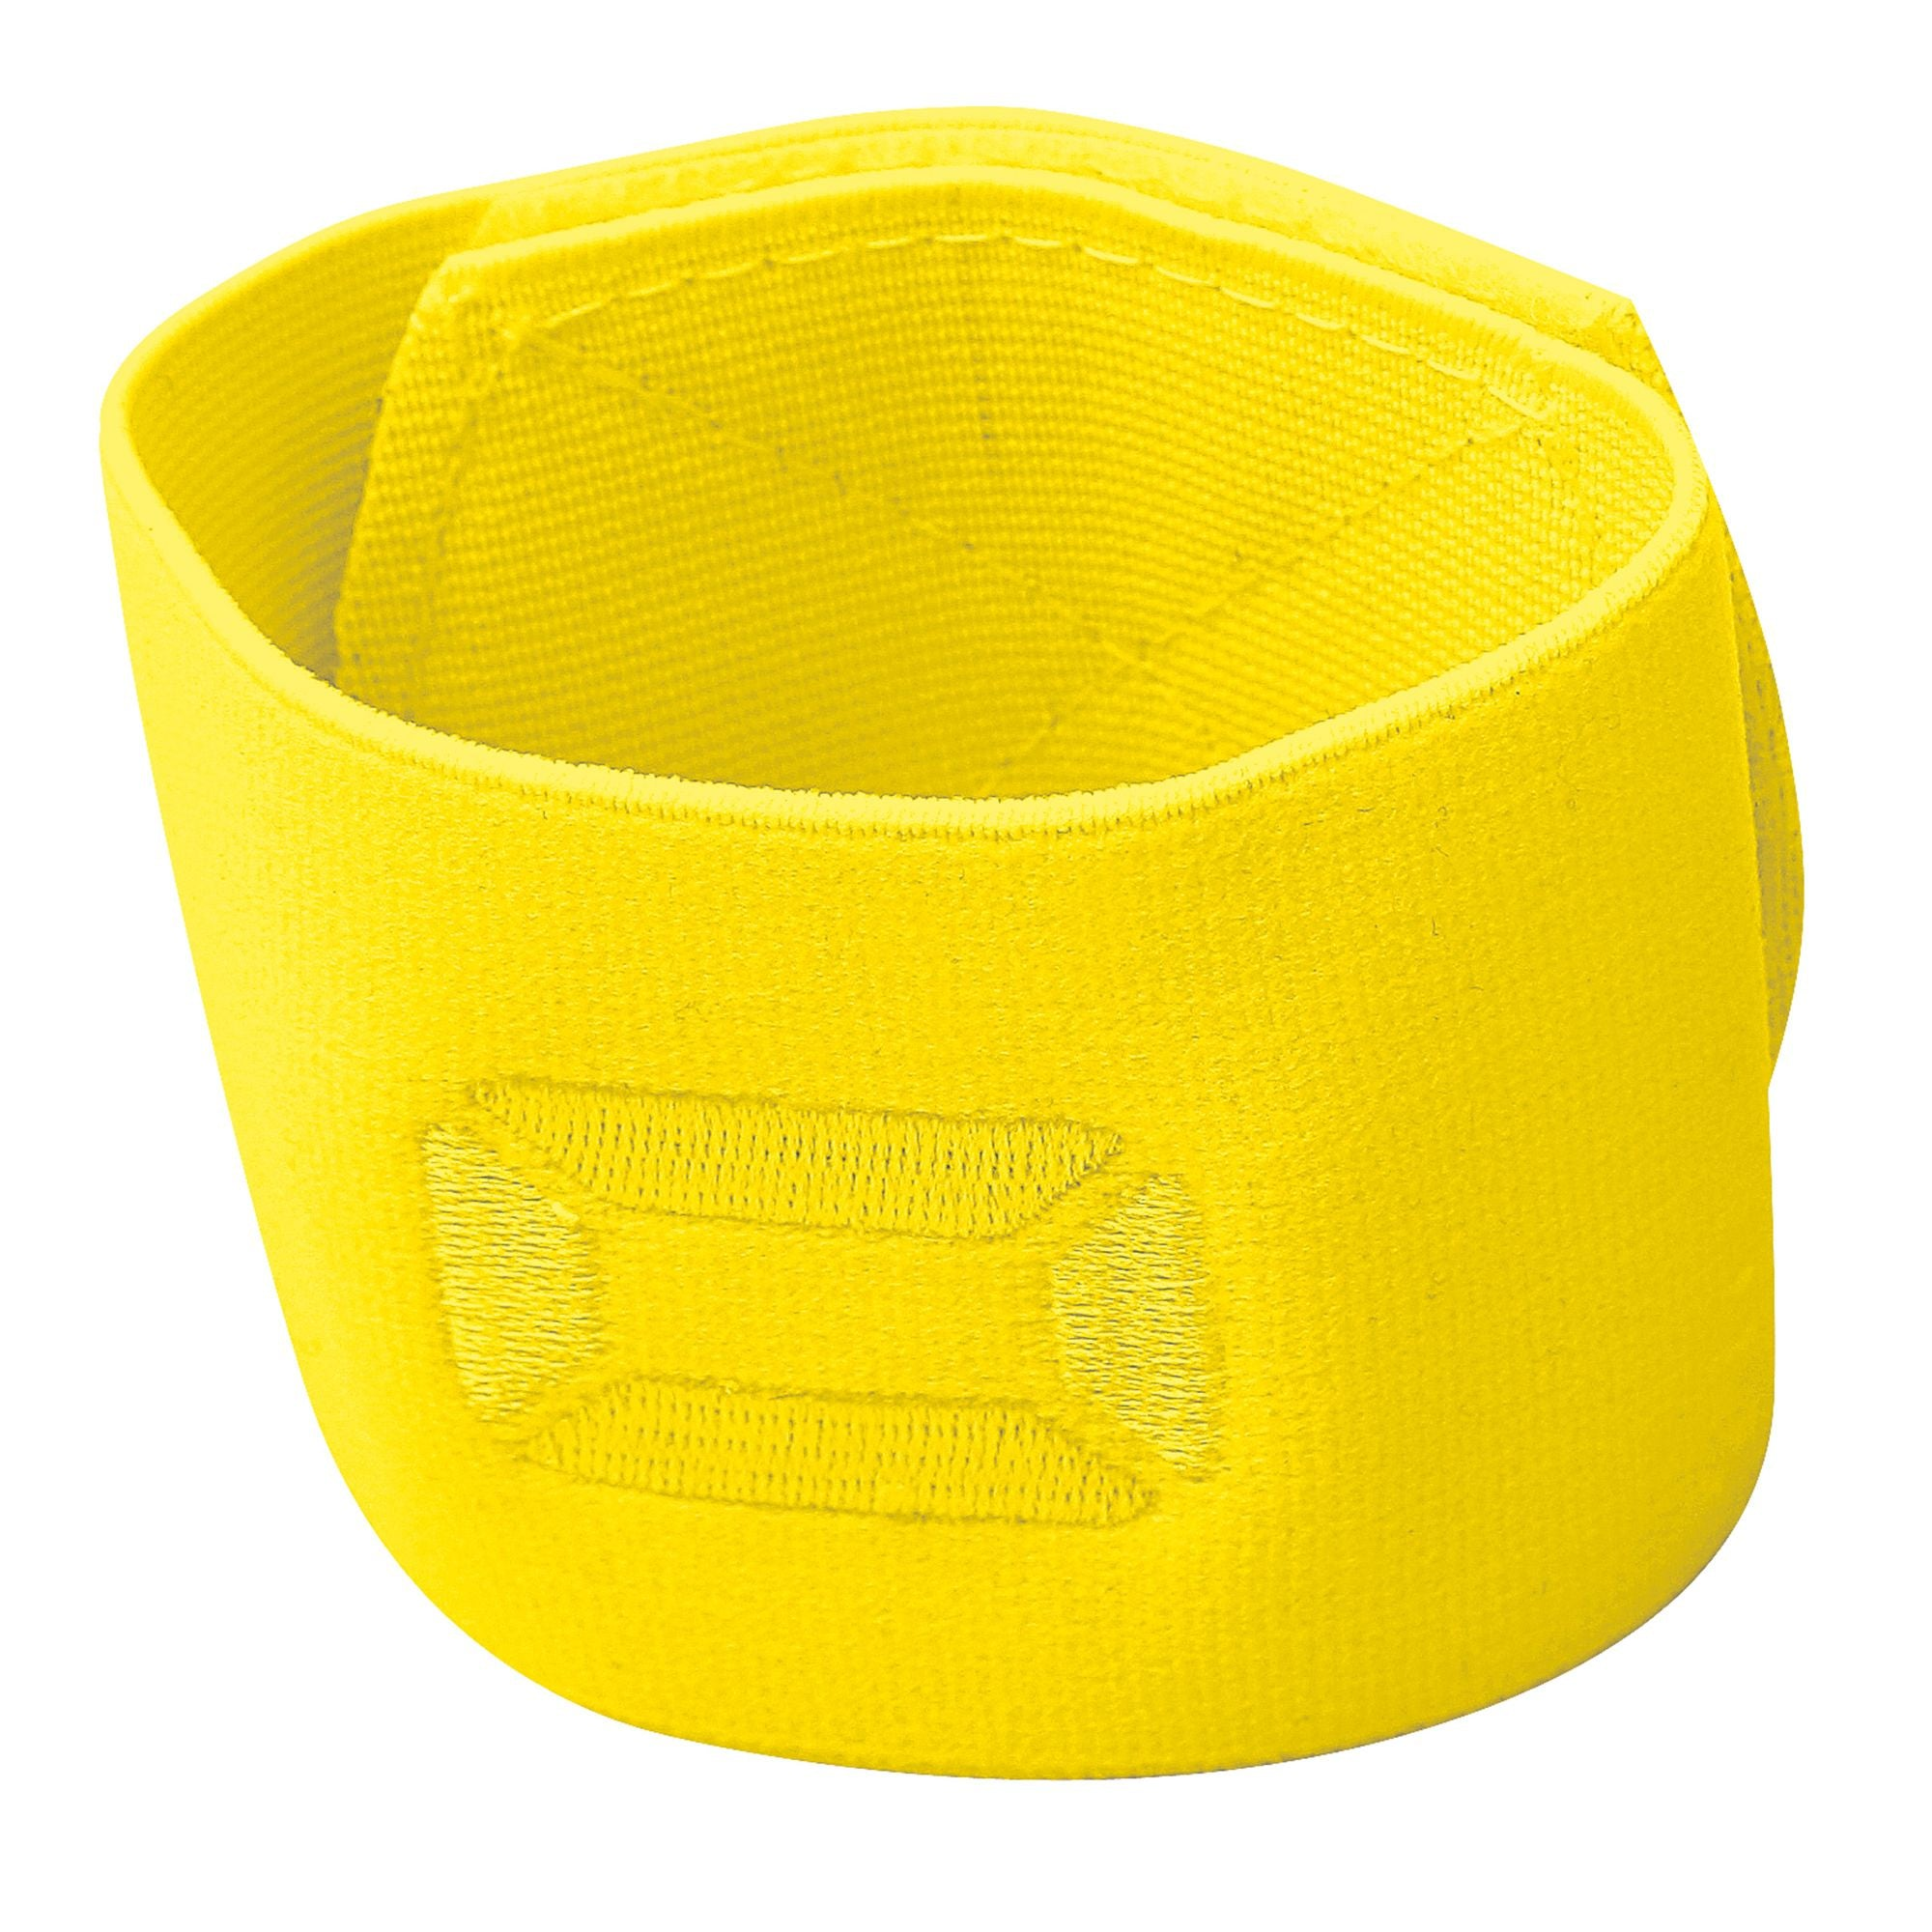 Stanno Guard Stay in yellow with same colour centralised embroidered Stanno logo